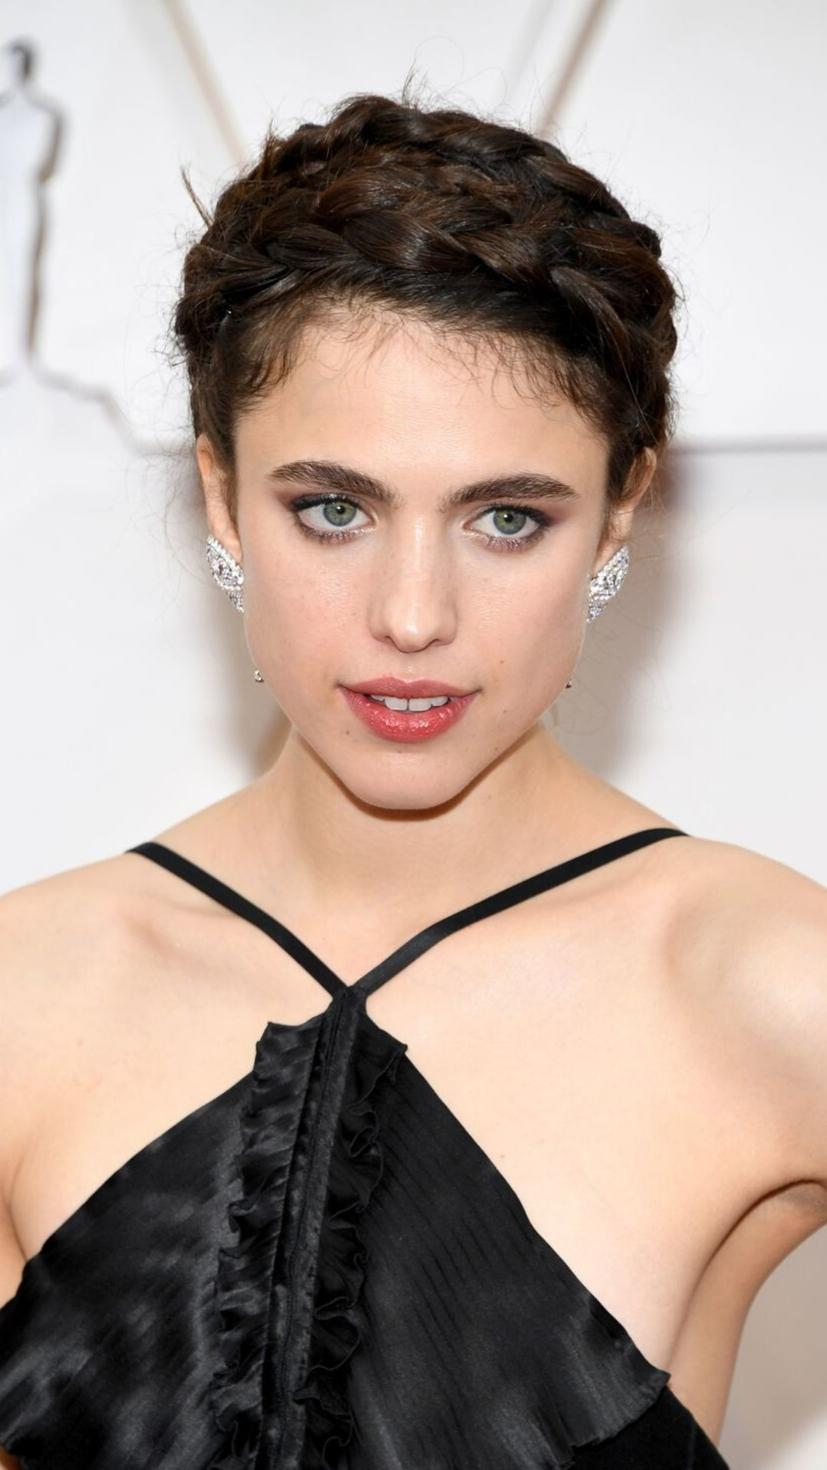 No one wears the natural look better than 'Once Upon a Time in Hollywood' star Margaret Qualley.  With a nearly no-makeup look and braided up-do, we can't get over how beautiful this look is!